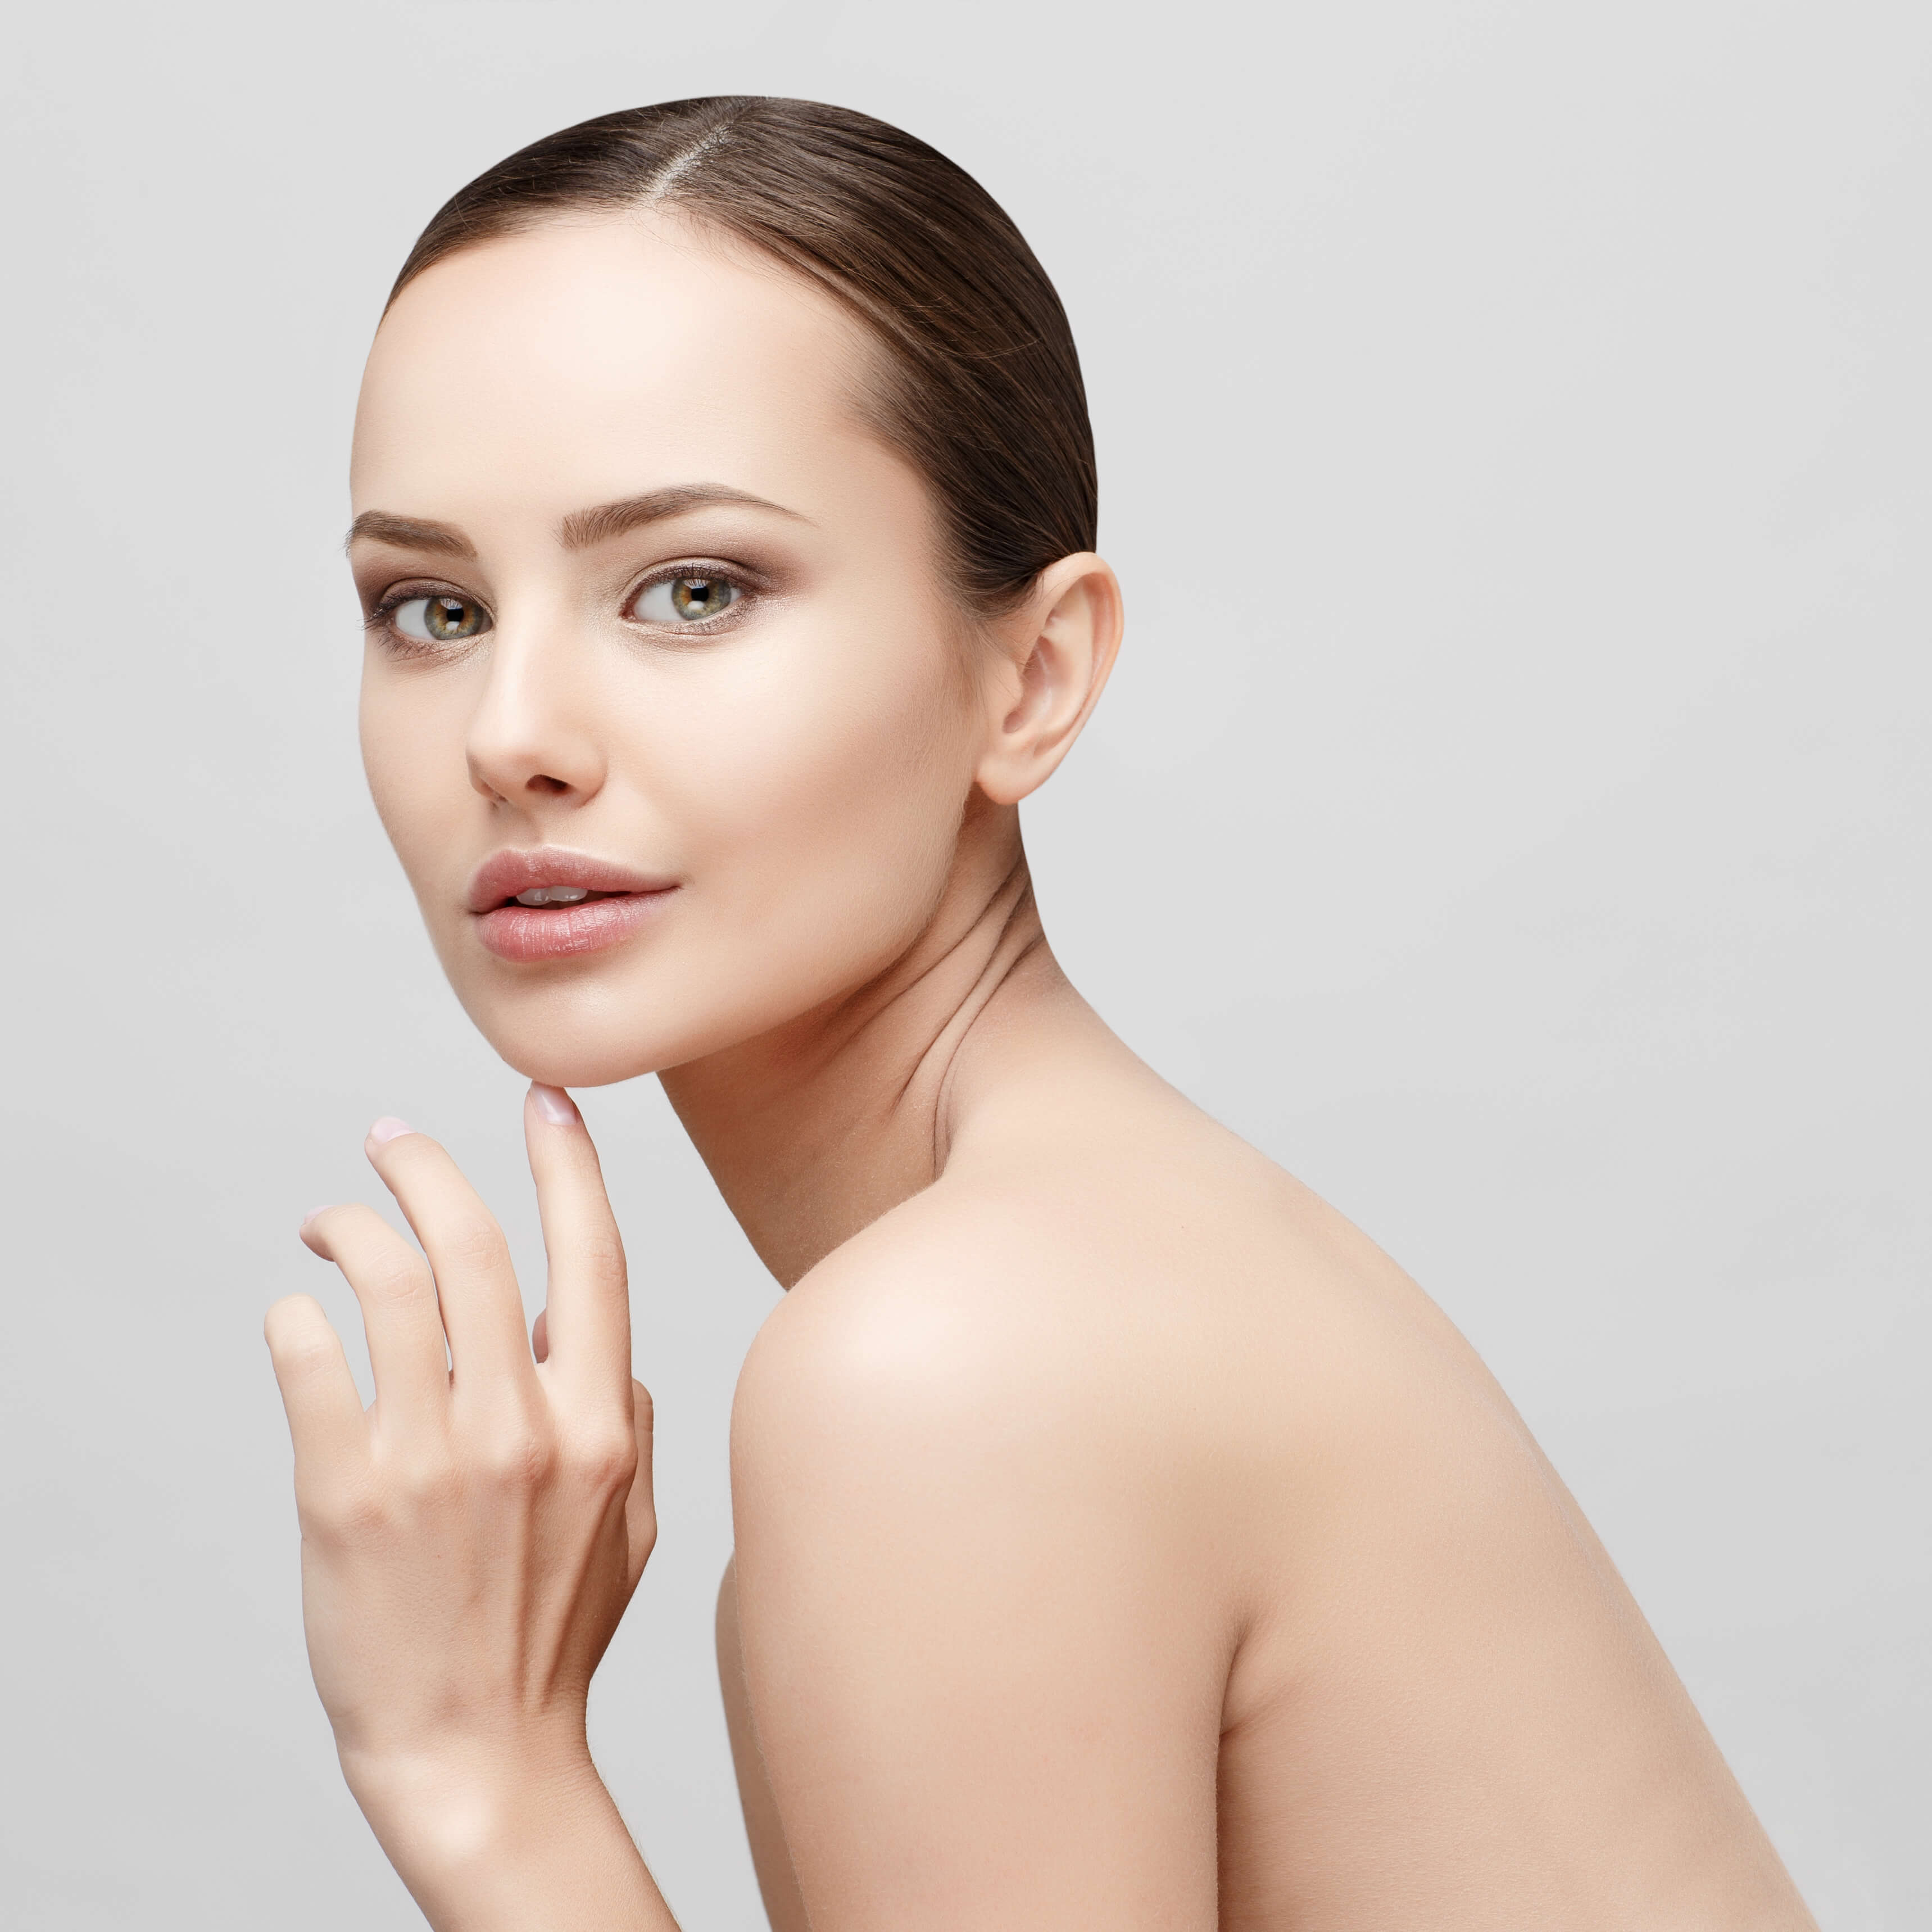 Beautiful Woman With Clean Fresh Skin Apax Medical